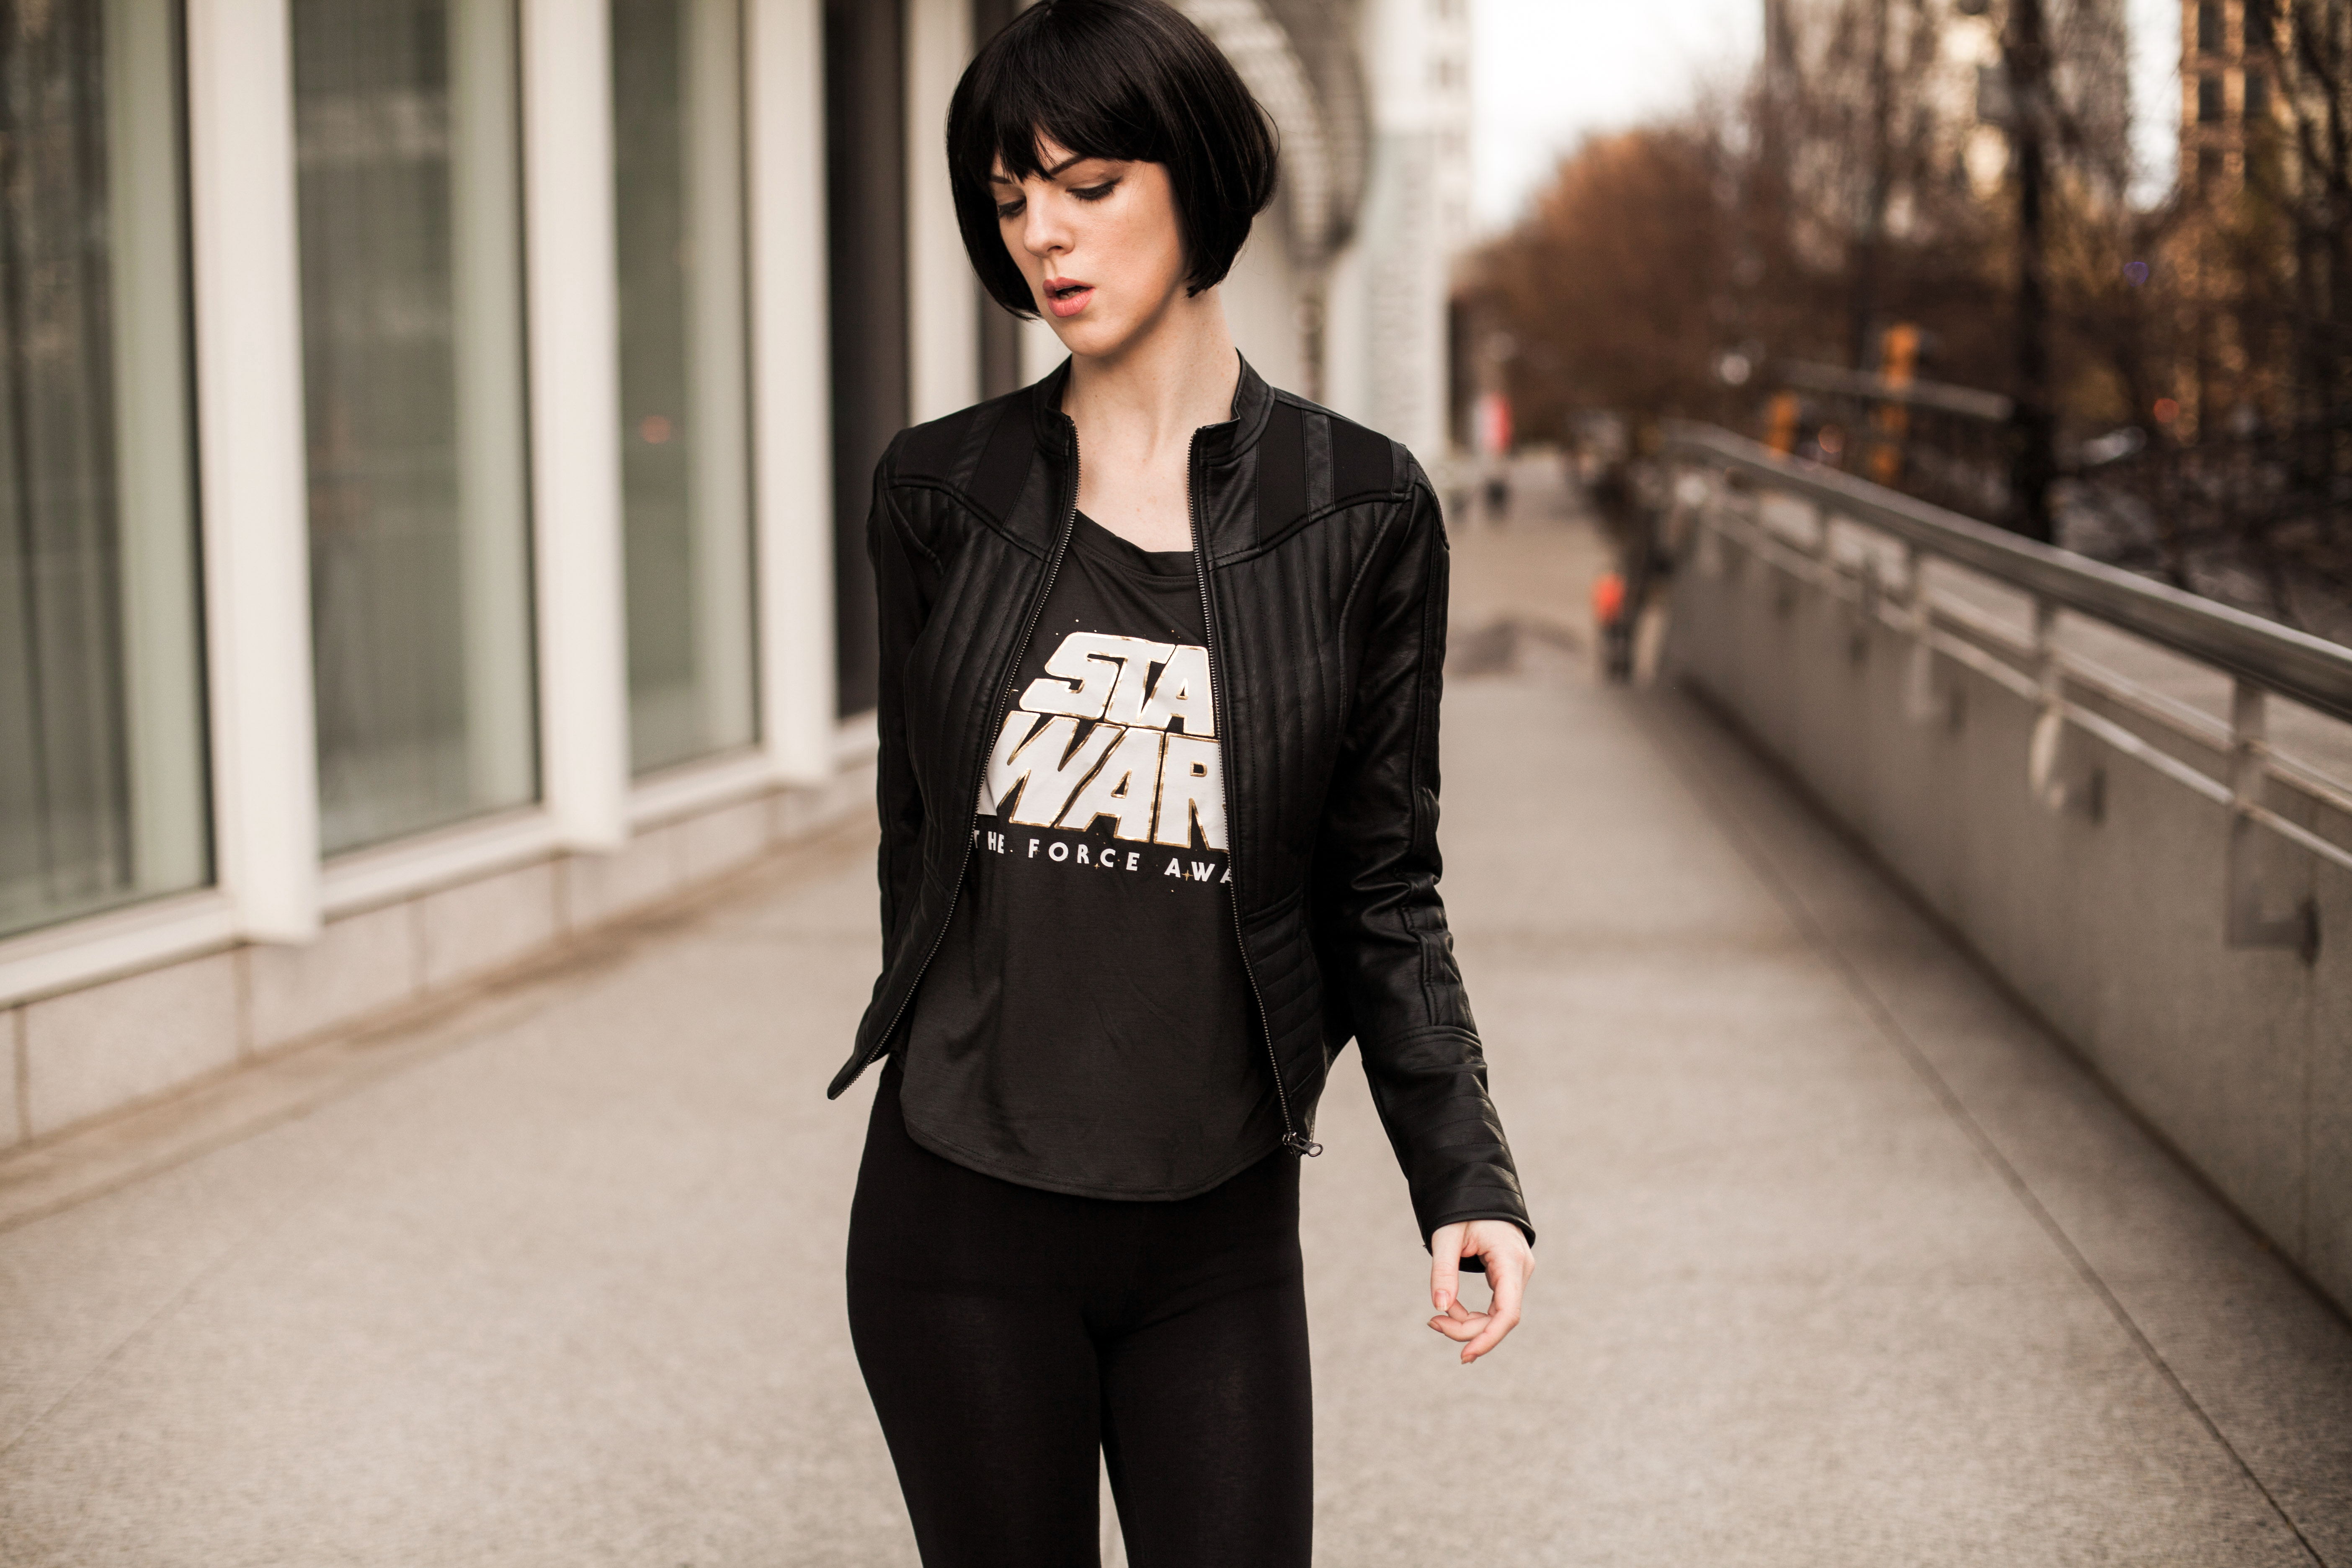 star wars Archives - The Lady Nerd